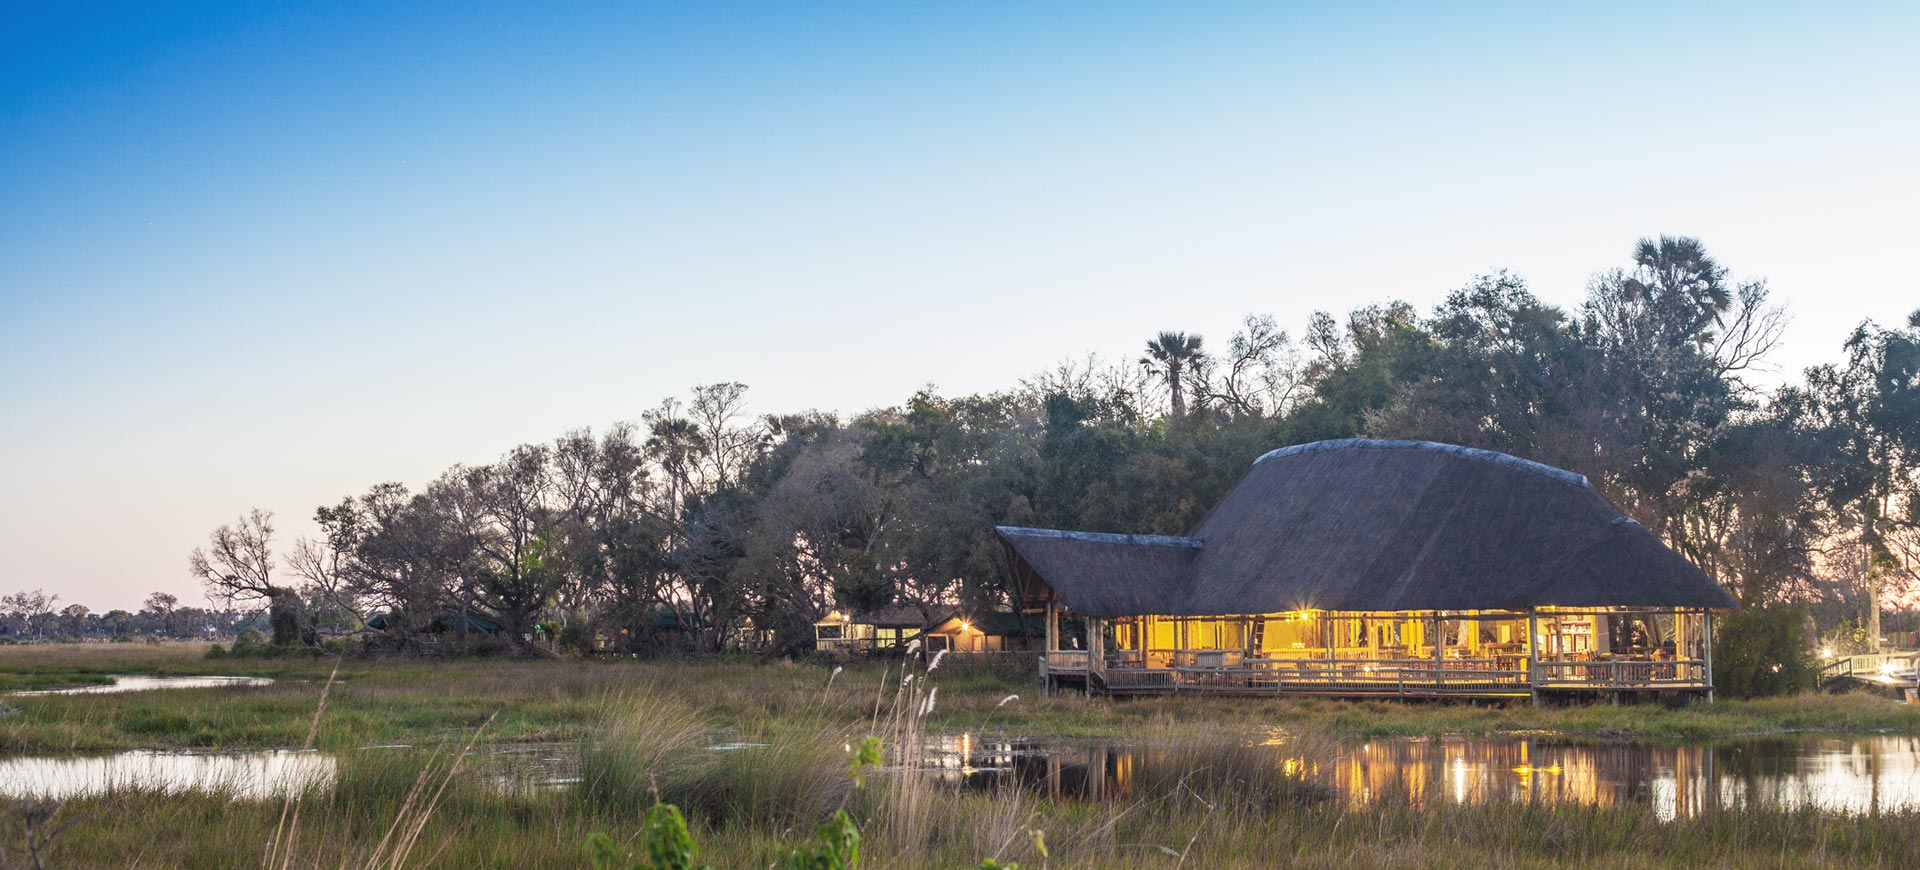 Moremi Crossing Lodge Okavango